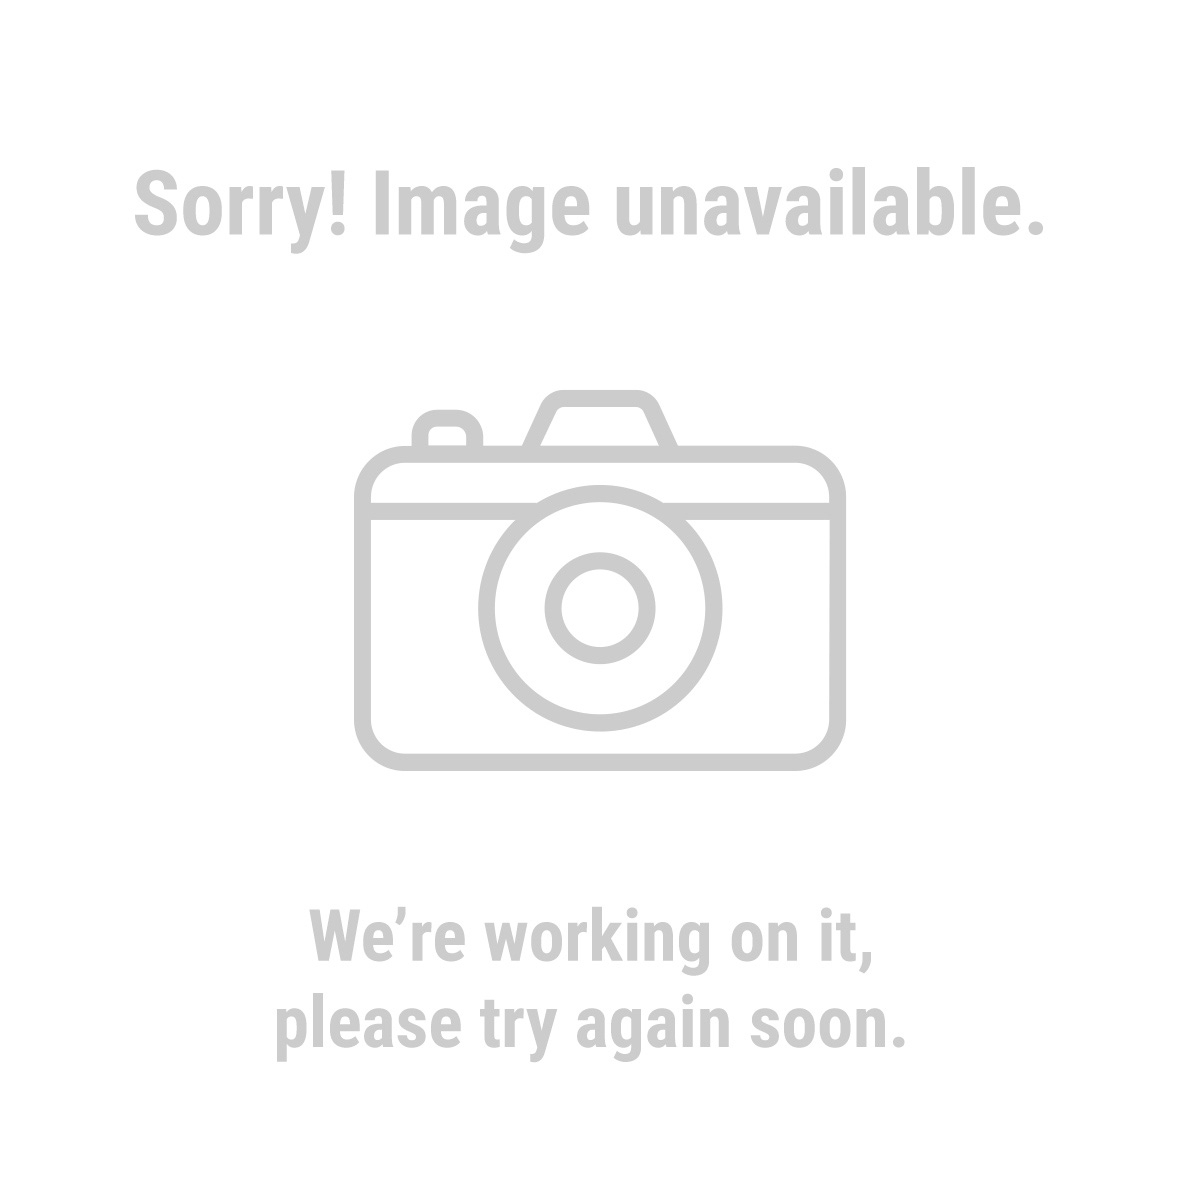 Harbor Freight Utility Cart >> 30 In X 16 In Two Shelf Steel Service Cart